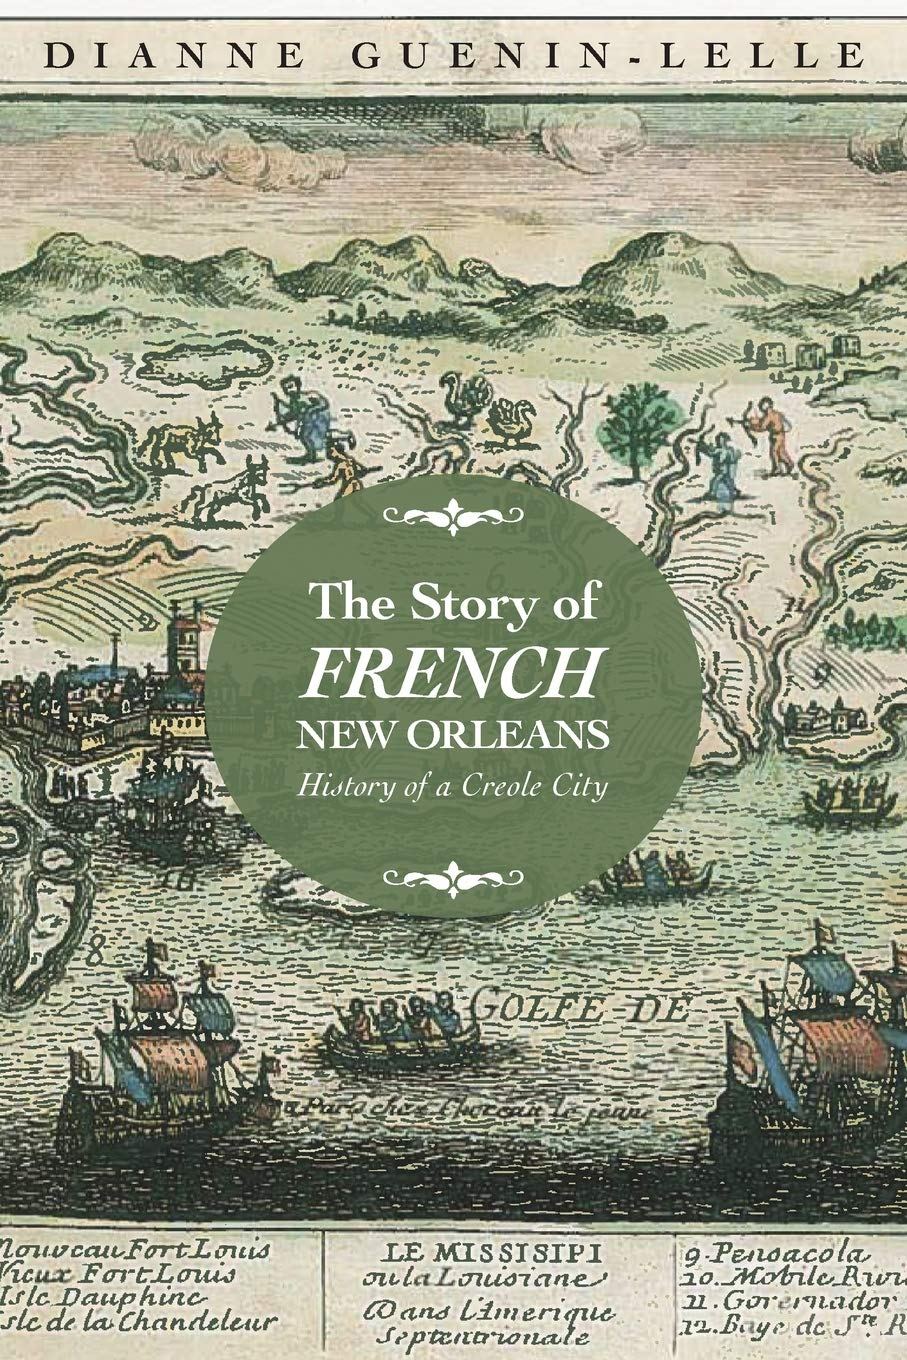 the story of french new orleans history of a creole city guenin lelle dianne 9781496820303 amazon com books amazon com